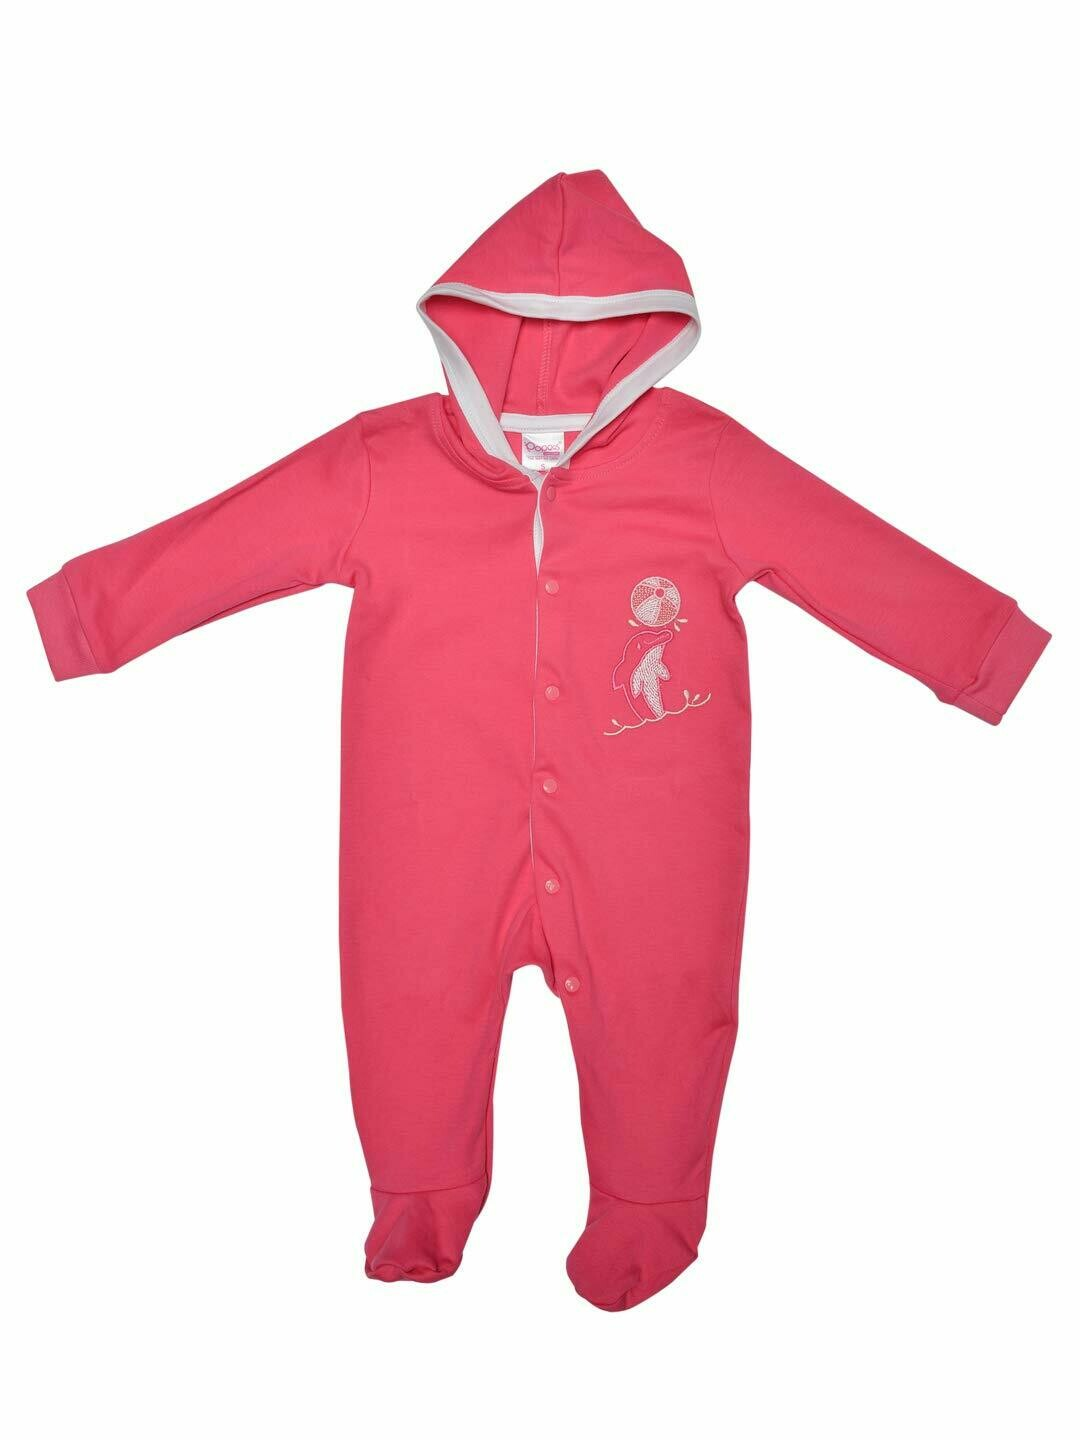 Rider Fuchsia Full Sleeves Hooded Bodysuit/Romper for Baby Boys & Girls